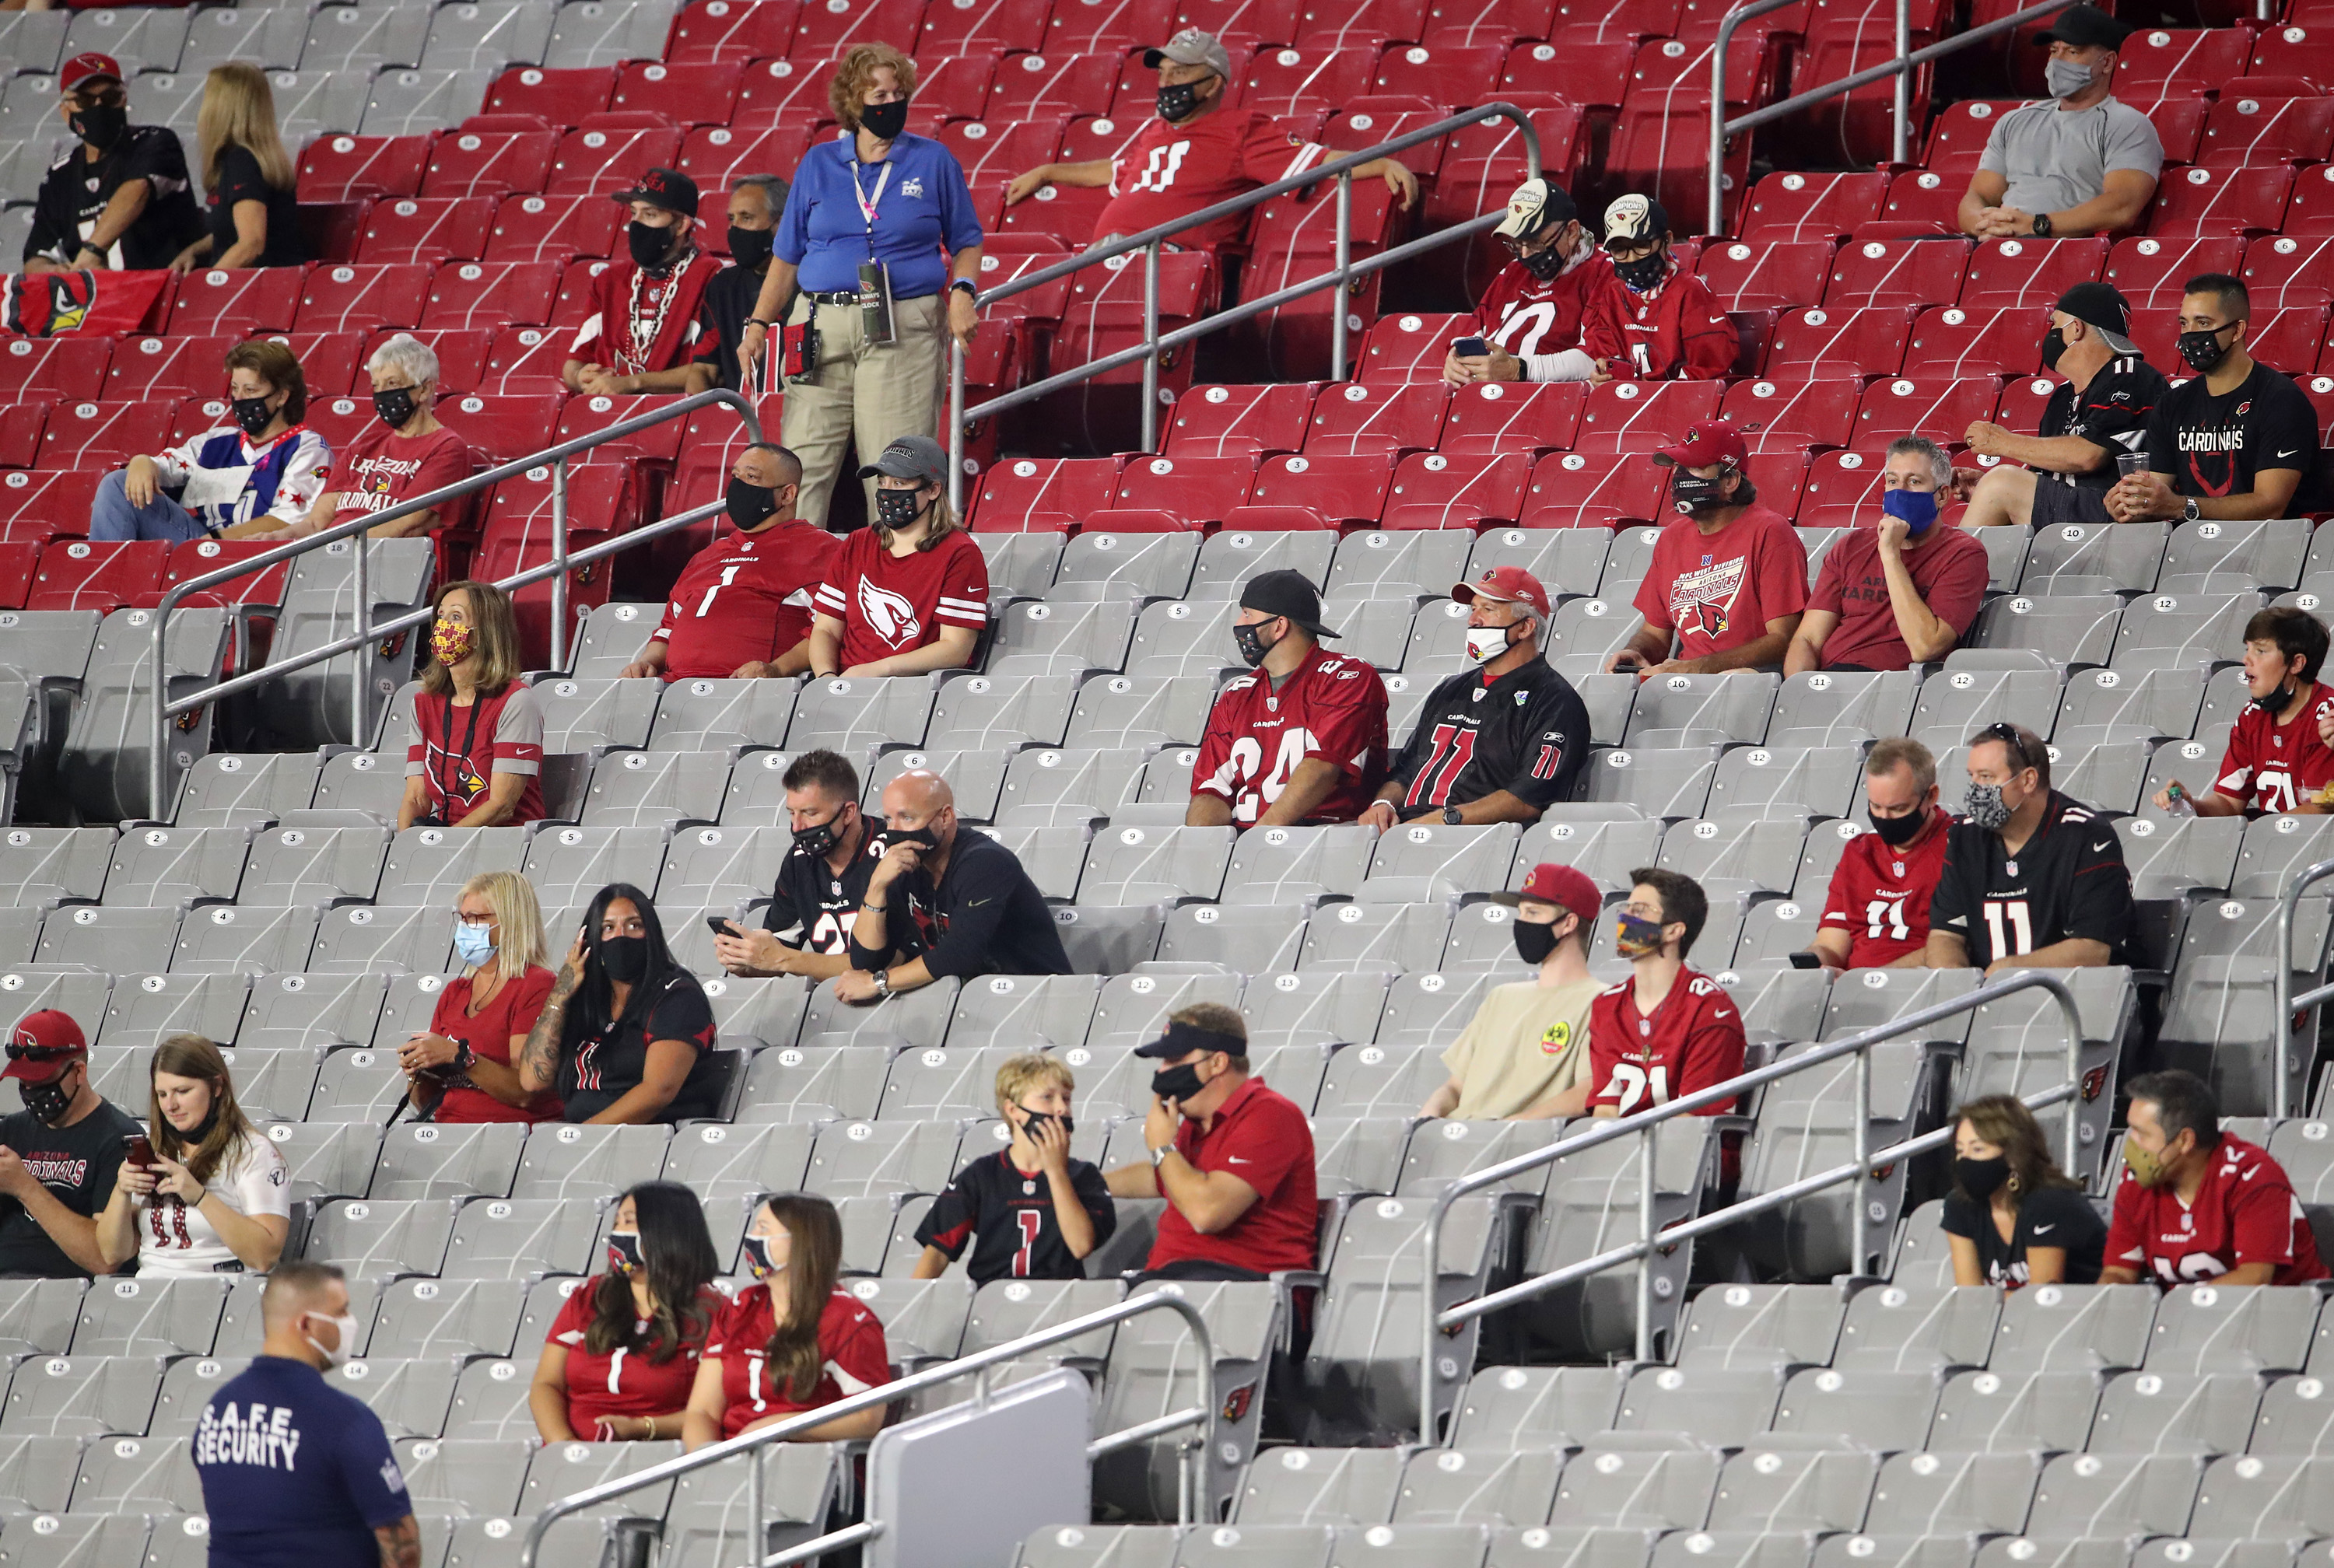 NFL fans sitting in the stands for a Cardinals game